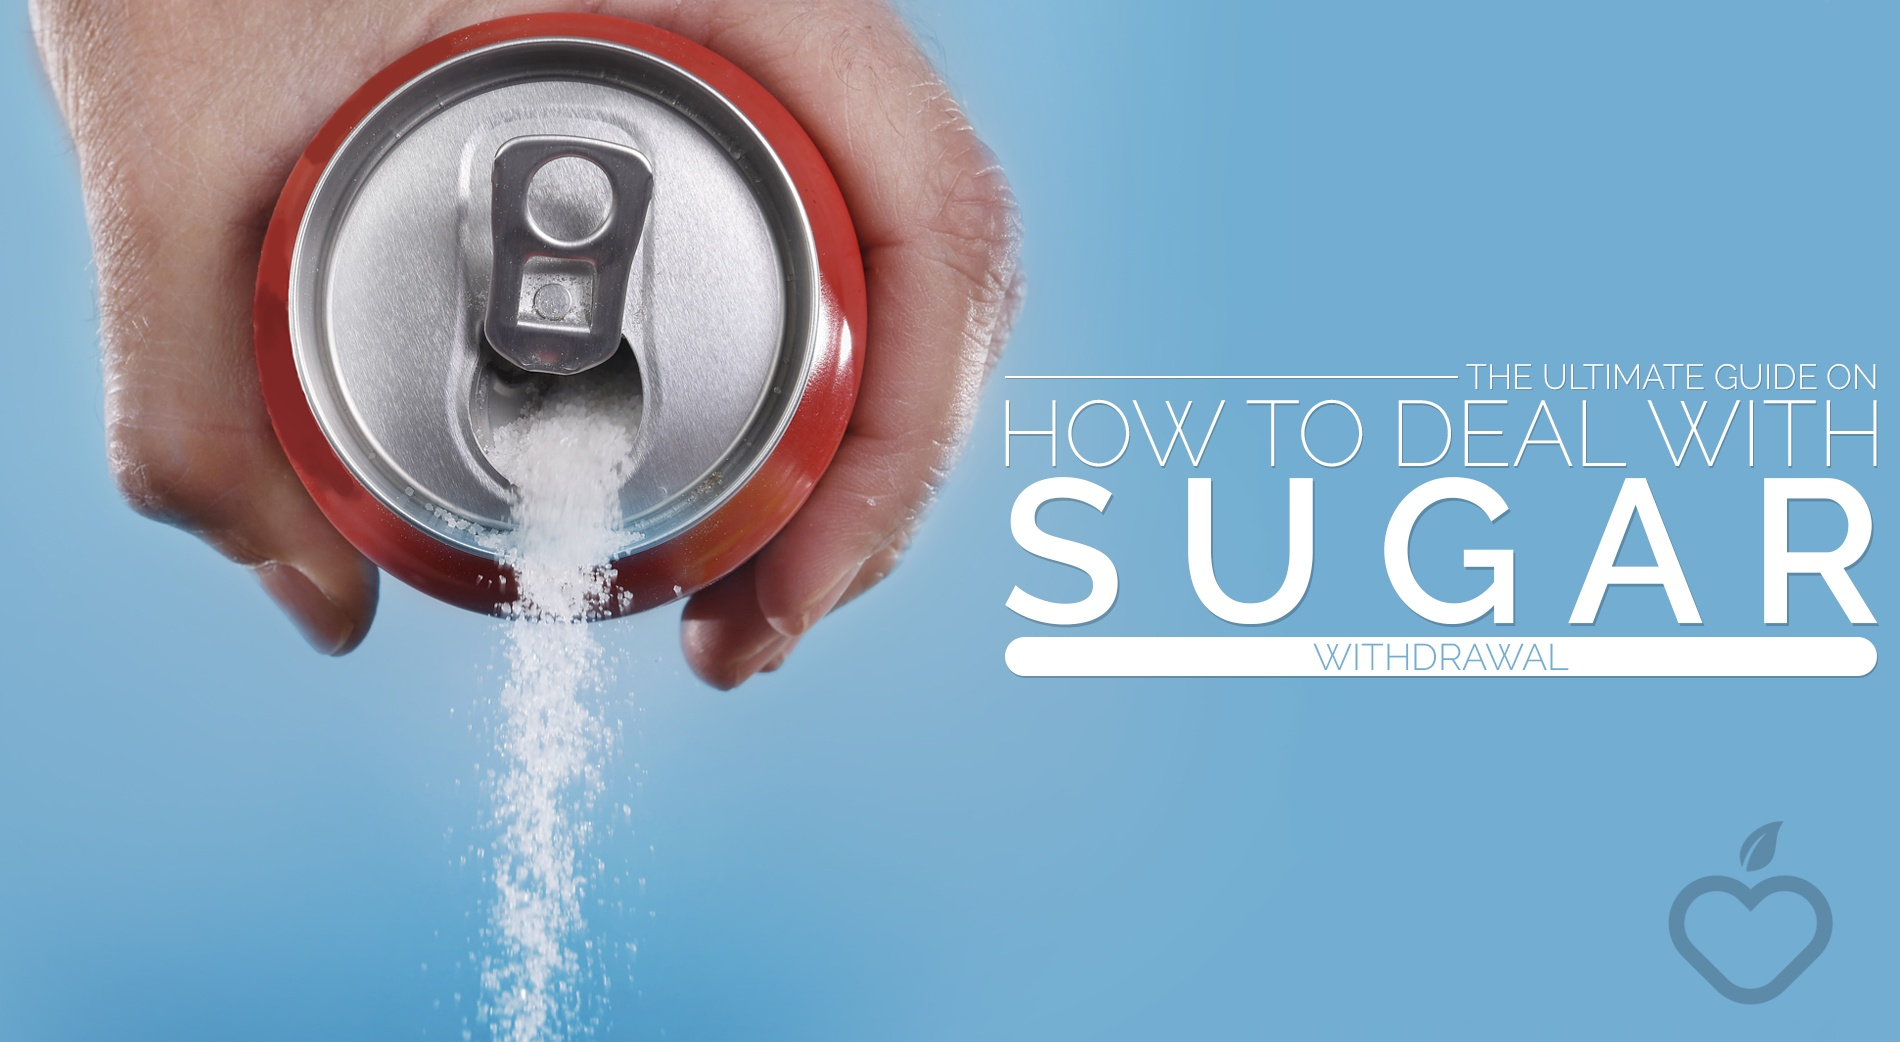 Sugar Withdrawal Image Design 1 - The Ultimate Guide On How To Deal With Sugar Withdrawal